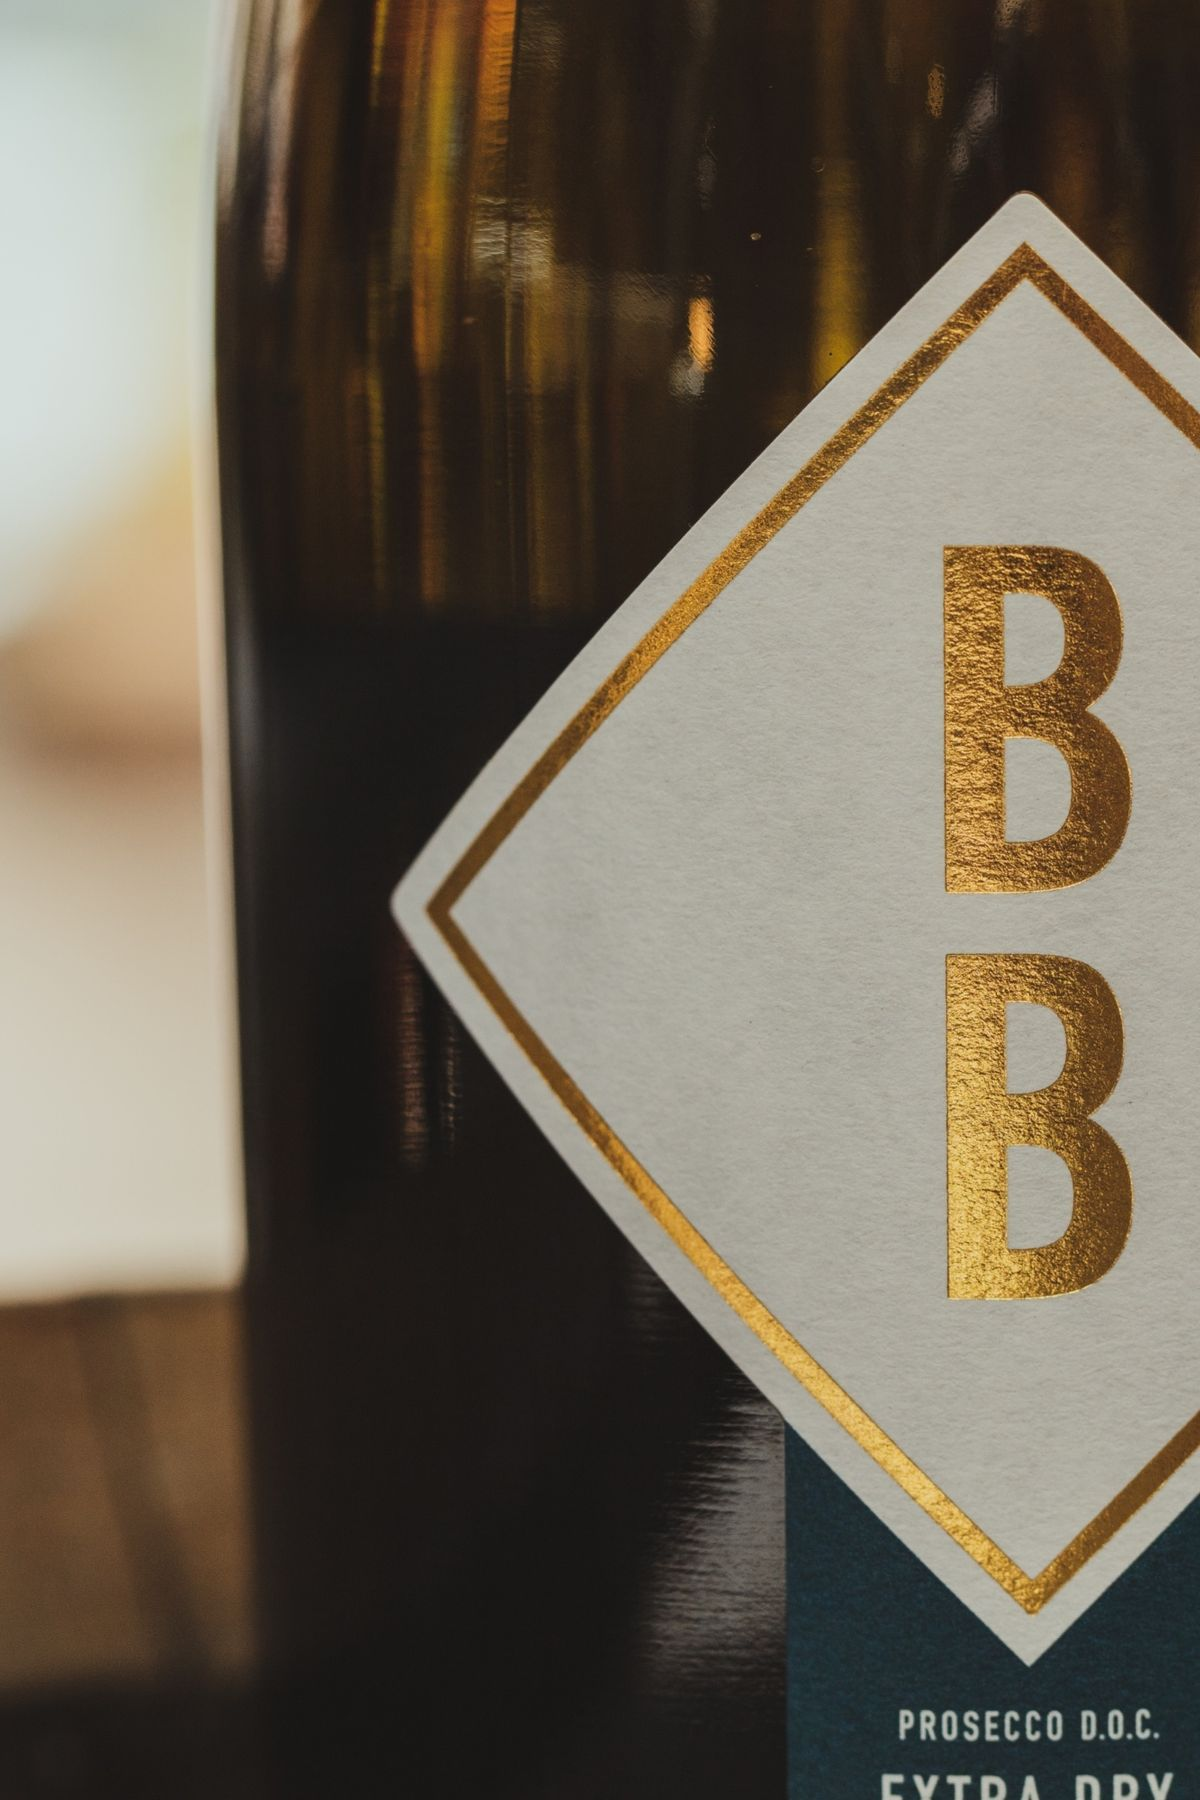 BB Bottled Extra Dry Prosecco, Bubble Bros Ltd